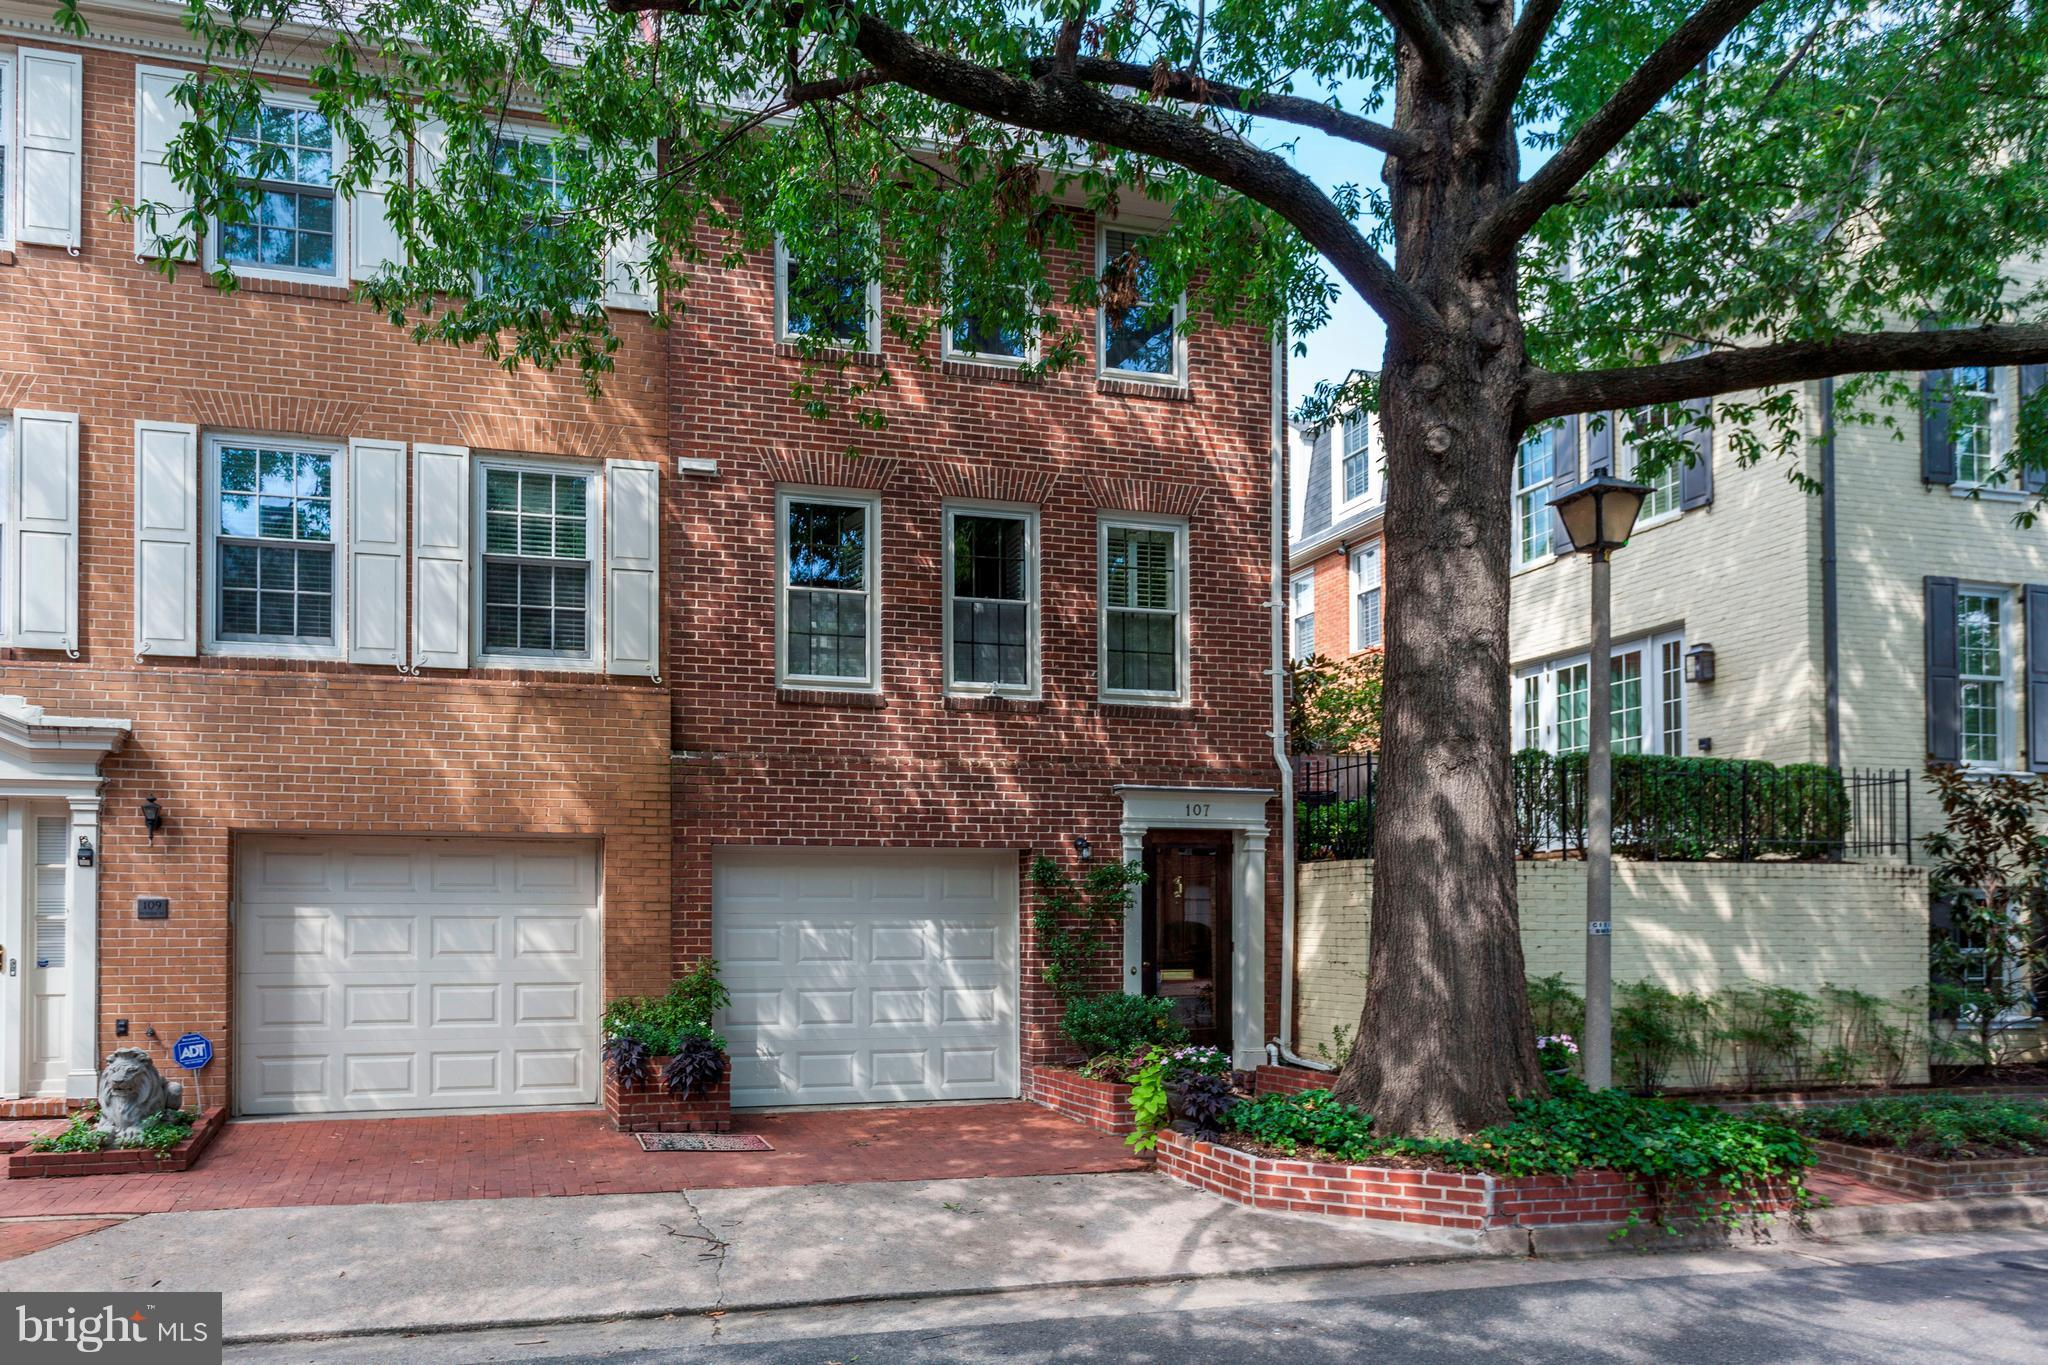 Brick End Townhouse, Located on a Double Deep Lot, Oversized Patio. 500 Feet to the Founders Park and Waterfront of the Potomac River. Living Room with 11 Foot Ceiling, Fireplace, Separate Dining Room, Gourmet Eat-In Kitchen, Lower Level Family Room has a Gas Fireplace and adjoining Full Bath. Three Bedrooms with Separate Full Bathrooms.